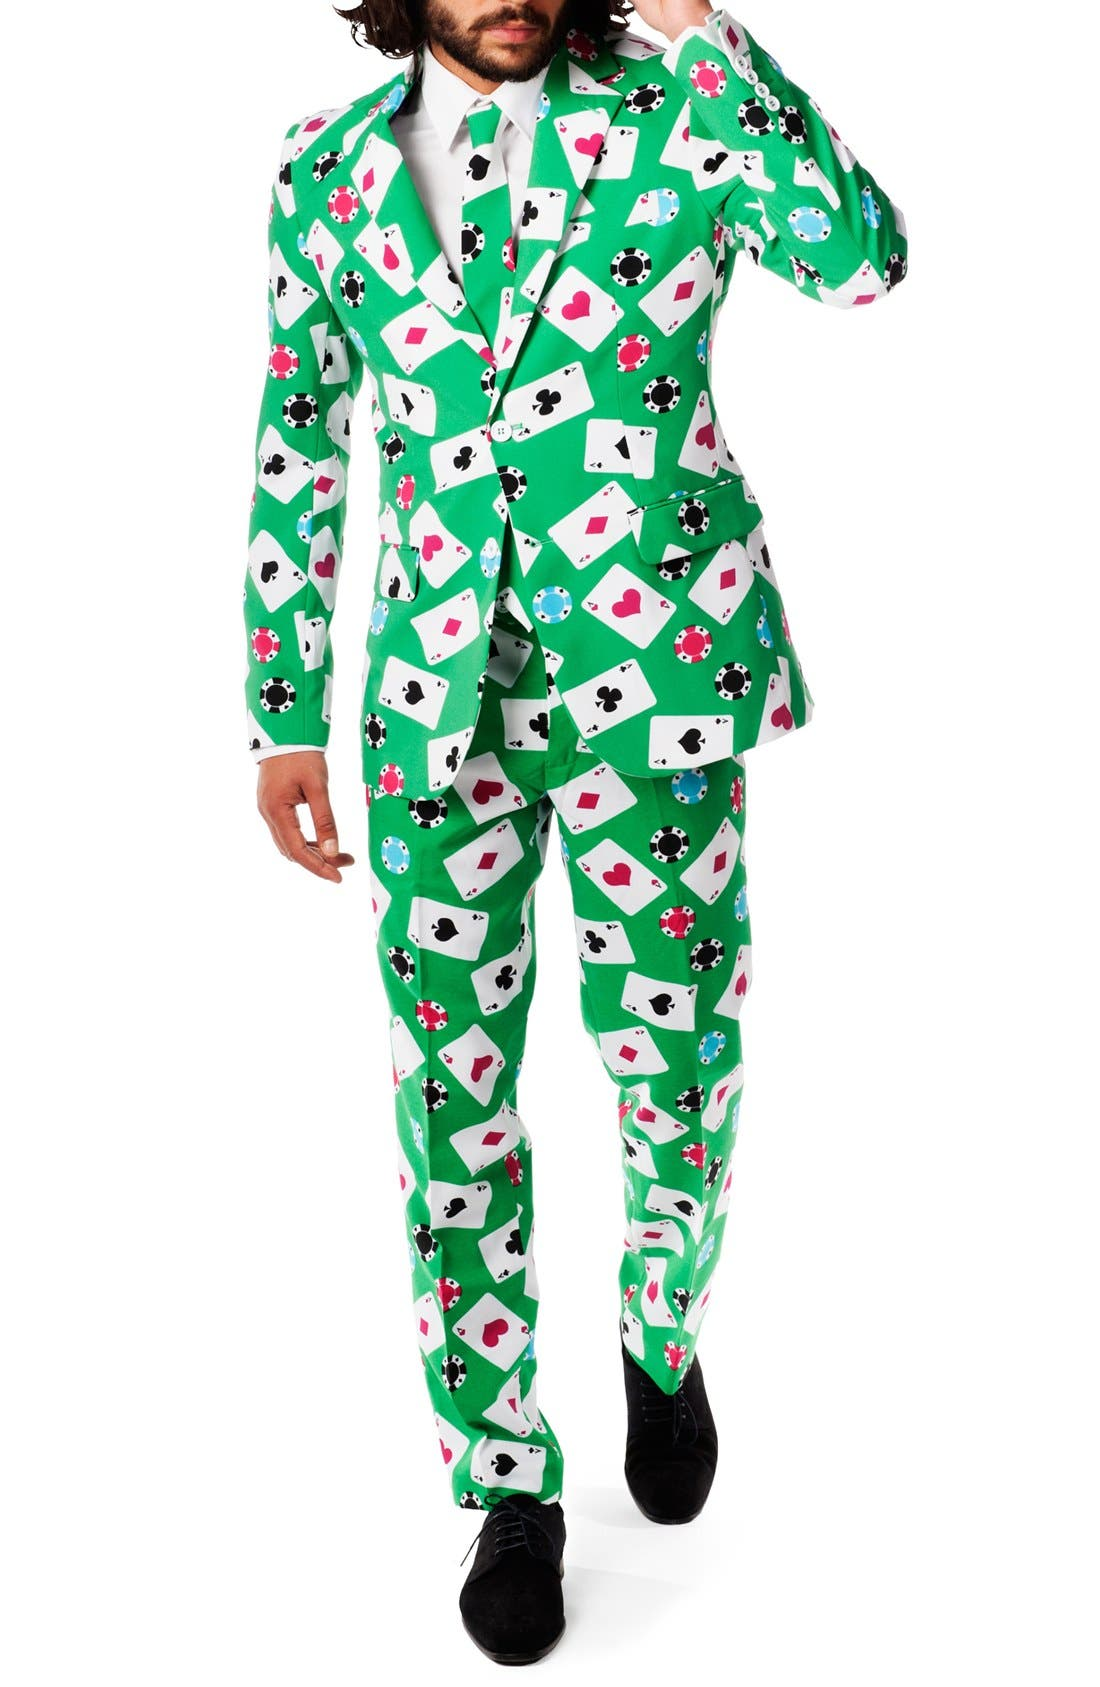 'Poker Face' Trim Fit Suit with Tie,                             Alternate thumbnail 3, color,                             Green